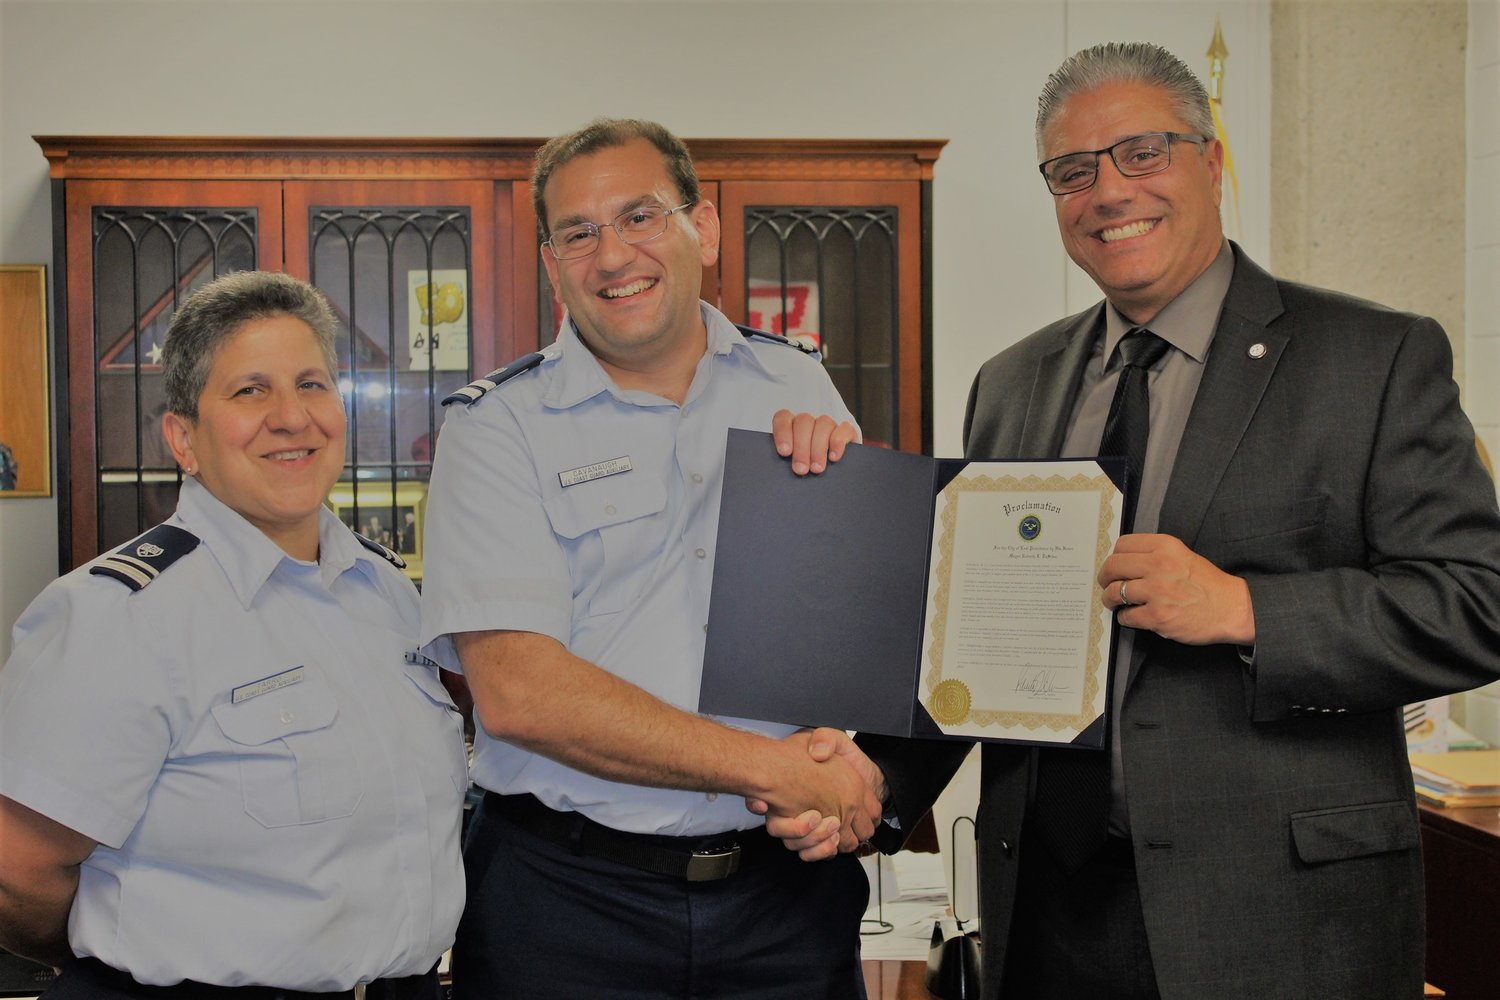 Mayor Bob DaSilva presents a proclamation from the City of East Providence to (L to R):Vice Flotilla Commander Patricia Tarro and Flotilla Commander Chad Cavanaugh.